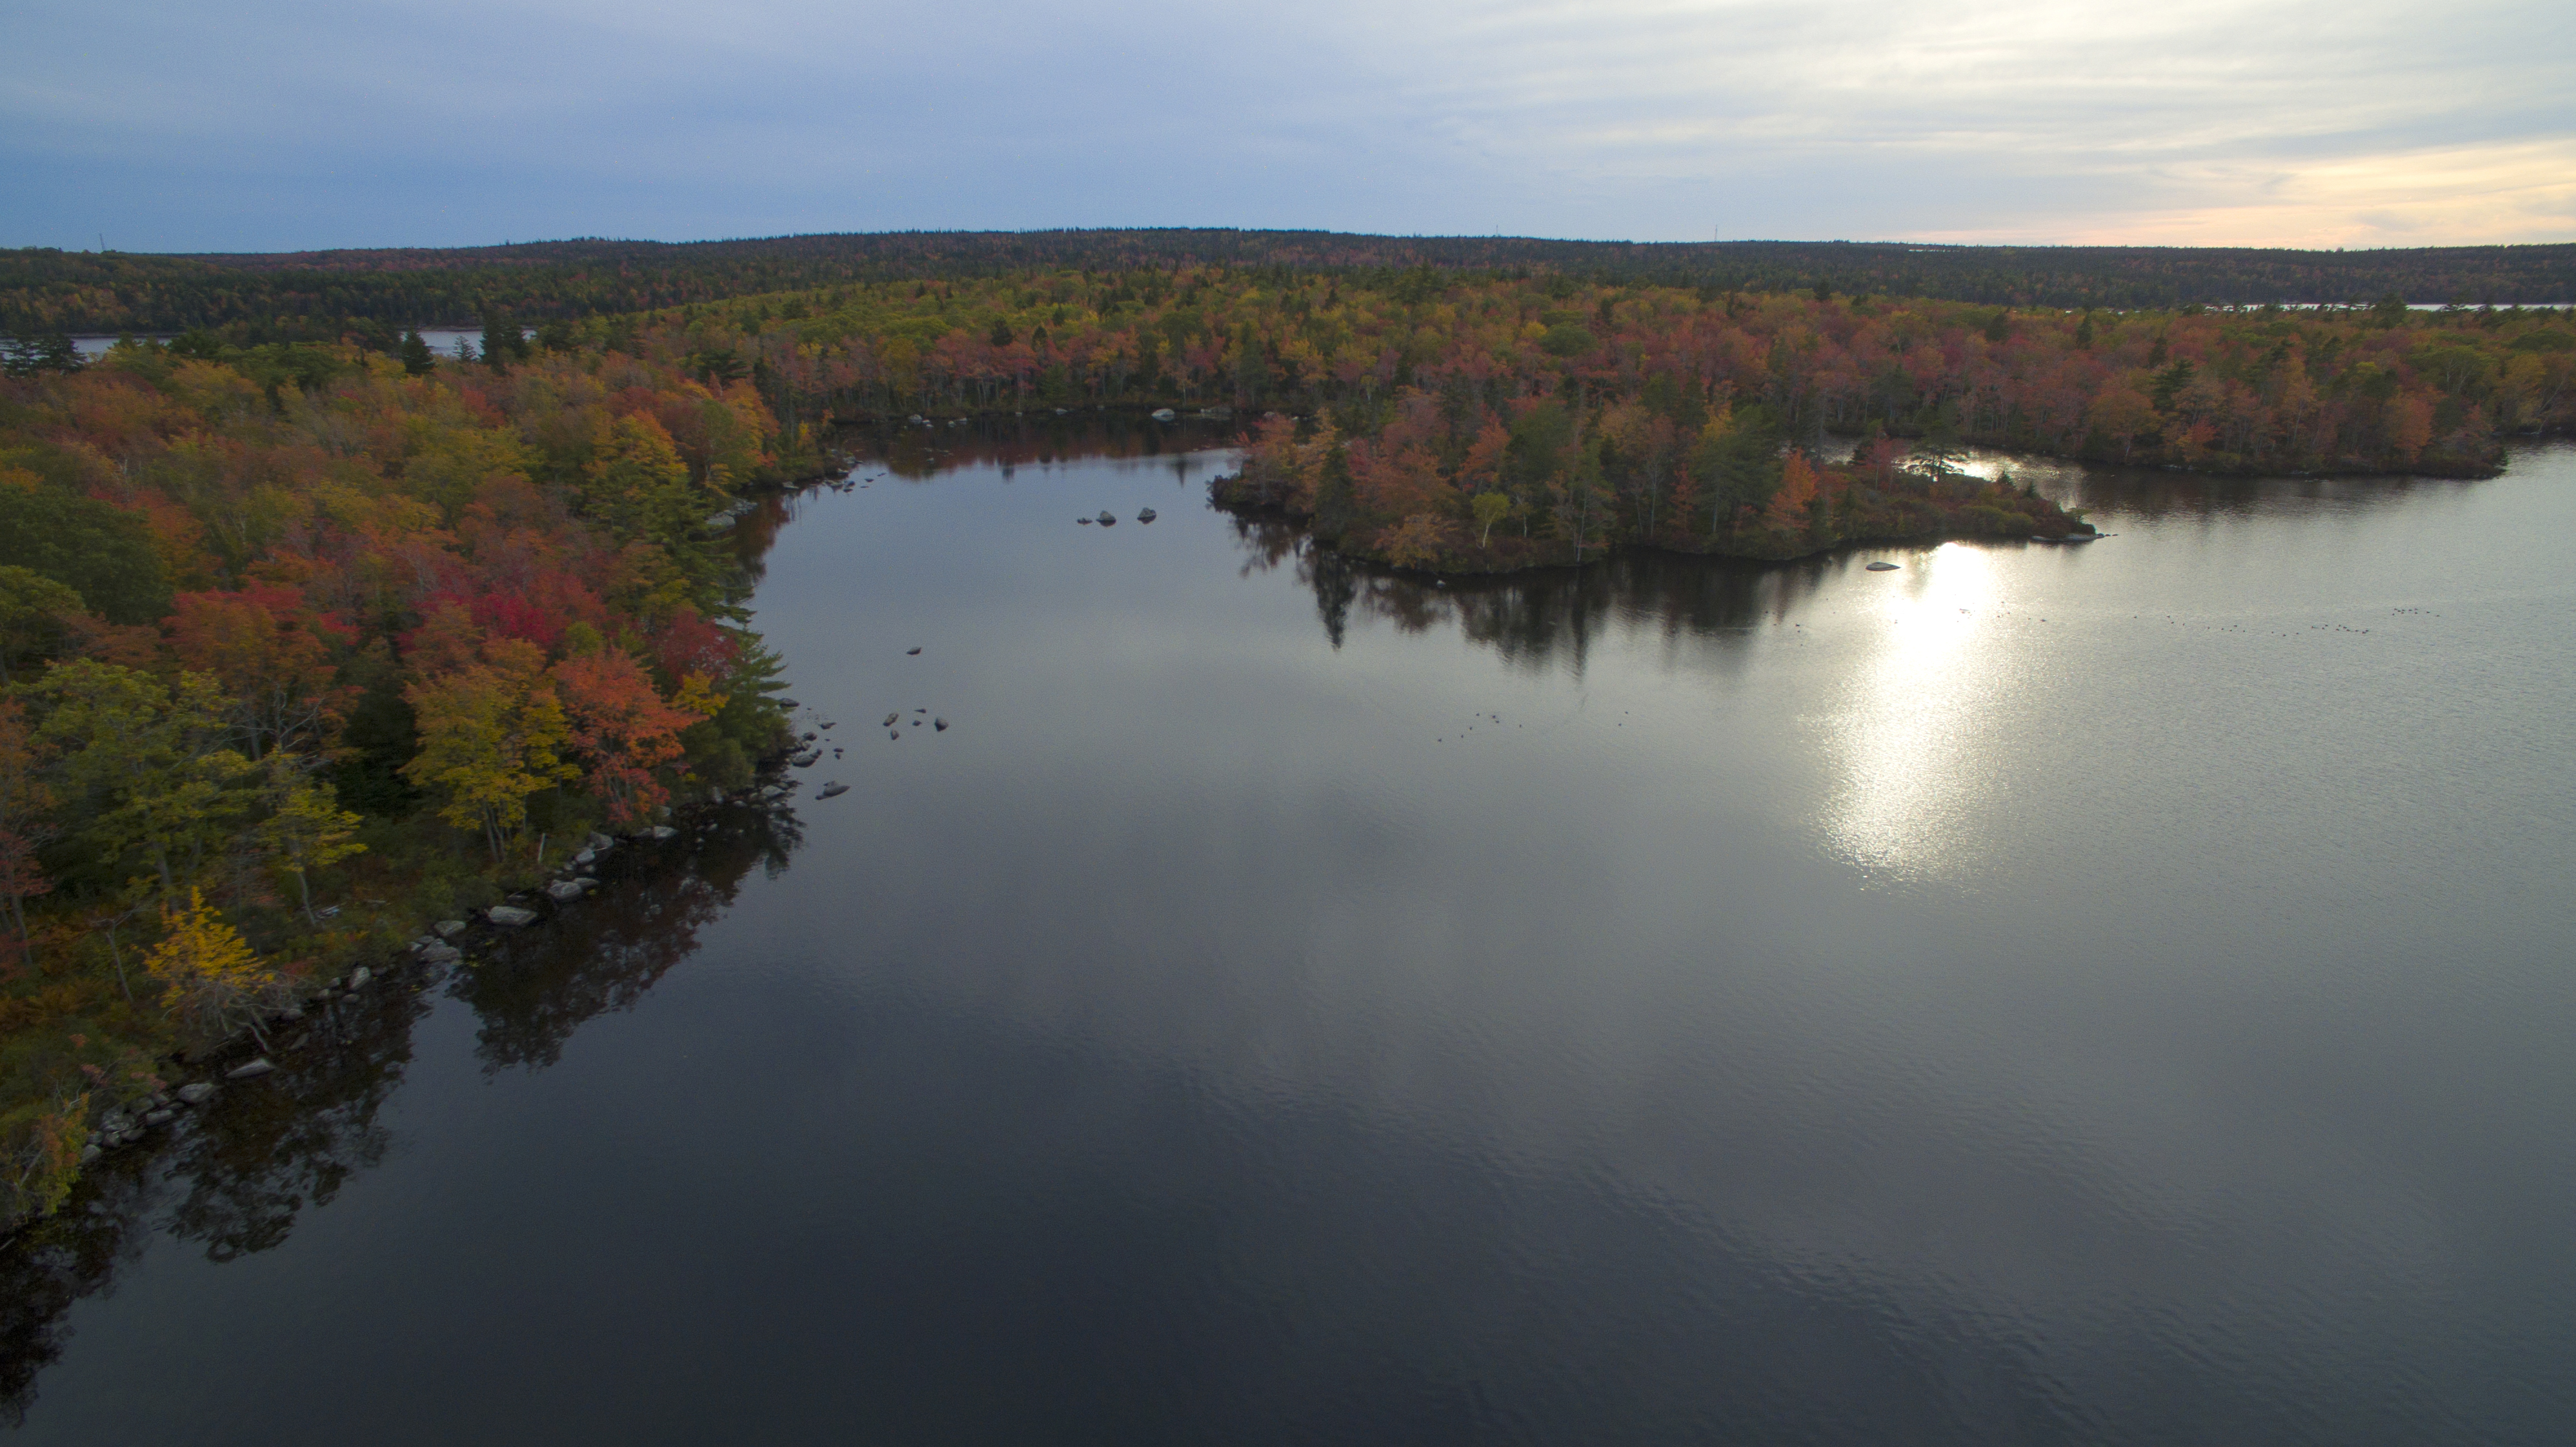 A view over Withrod lake at the Lakeview Trail in Long Lake Provincial Park, Halifax, Nova Scotia.